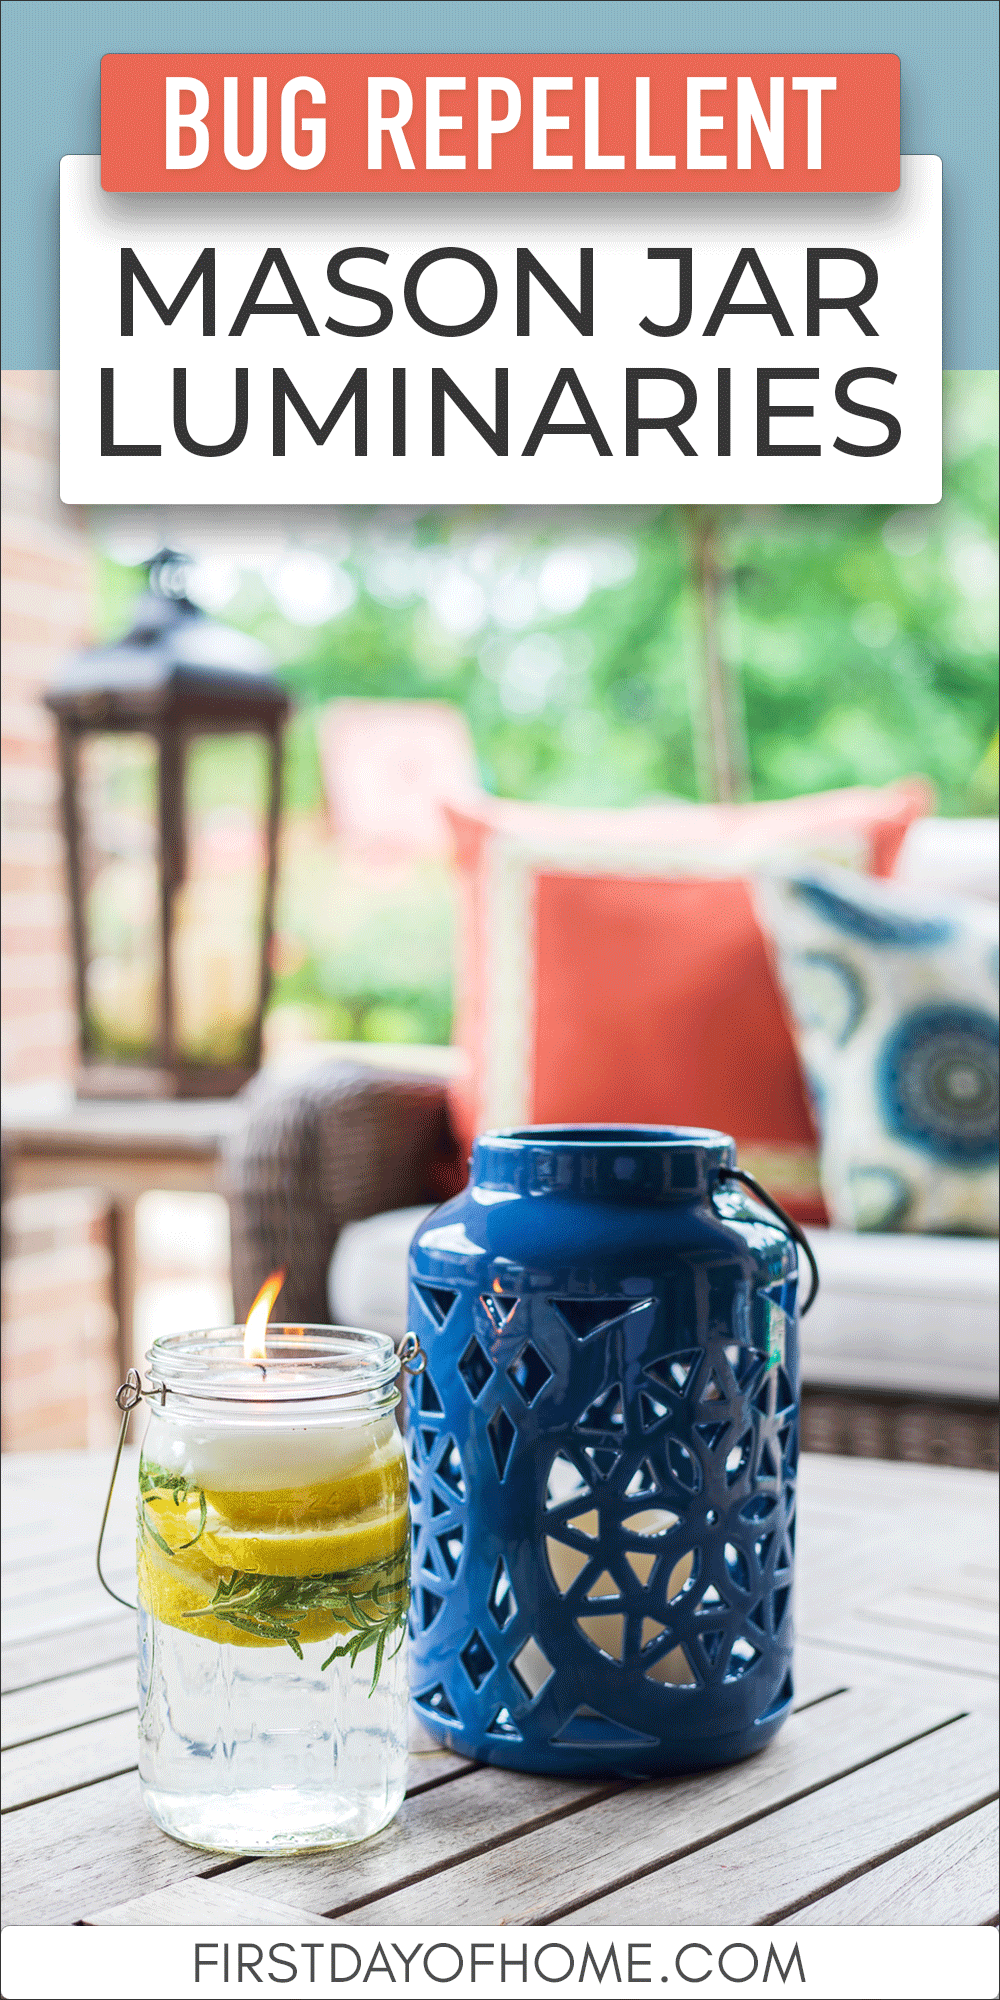 """Bug repellent mason jar luminary with a lantern on a patio table with text reading """"Bug Repellent Mason Jar Luminaries"""""""